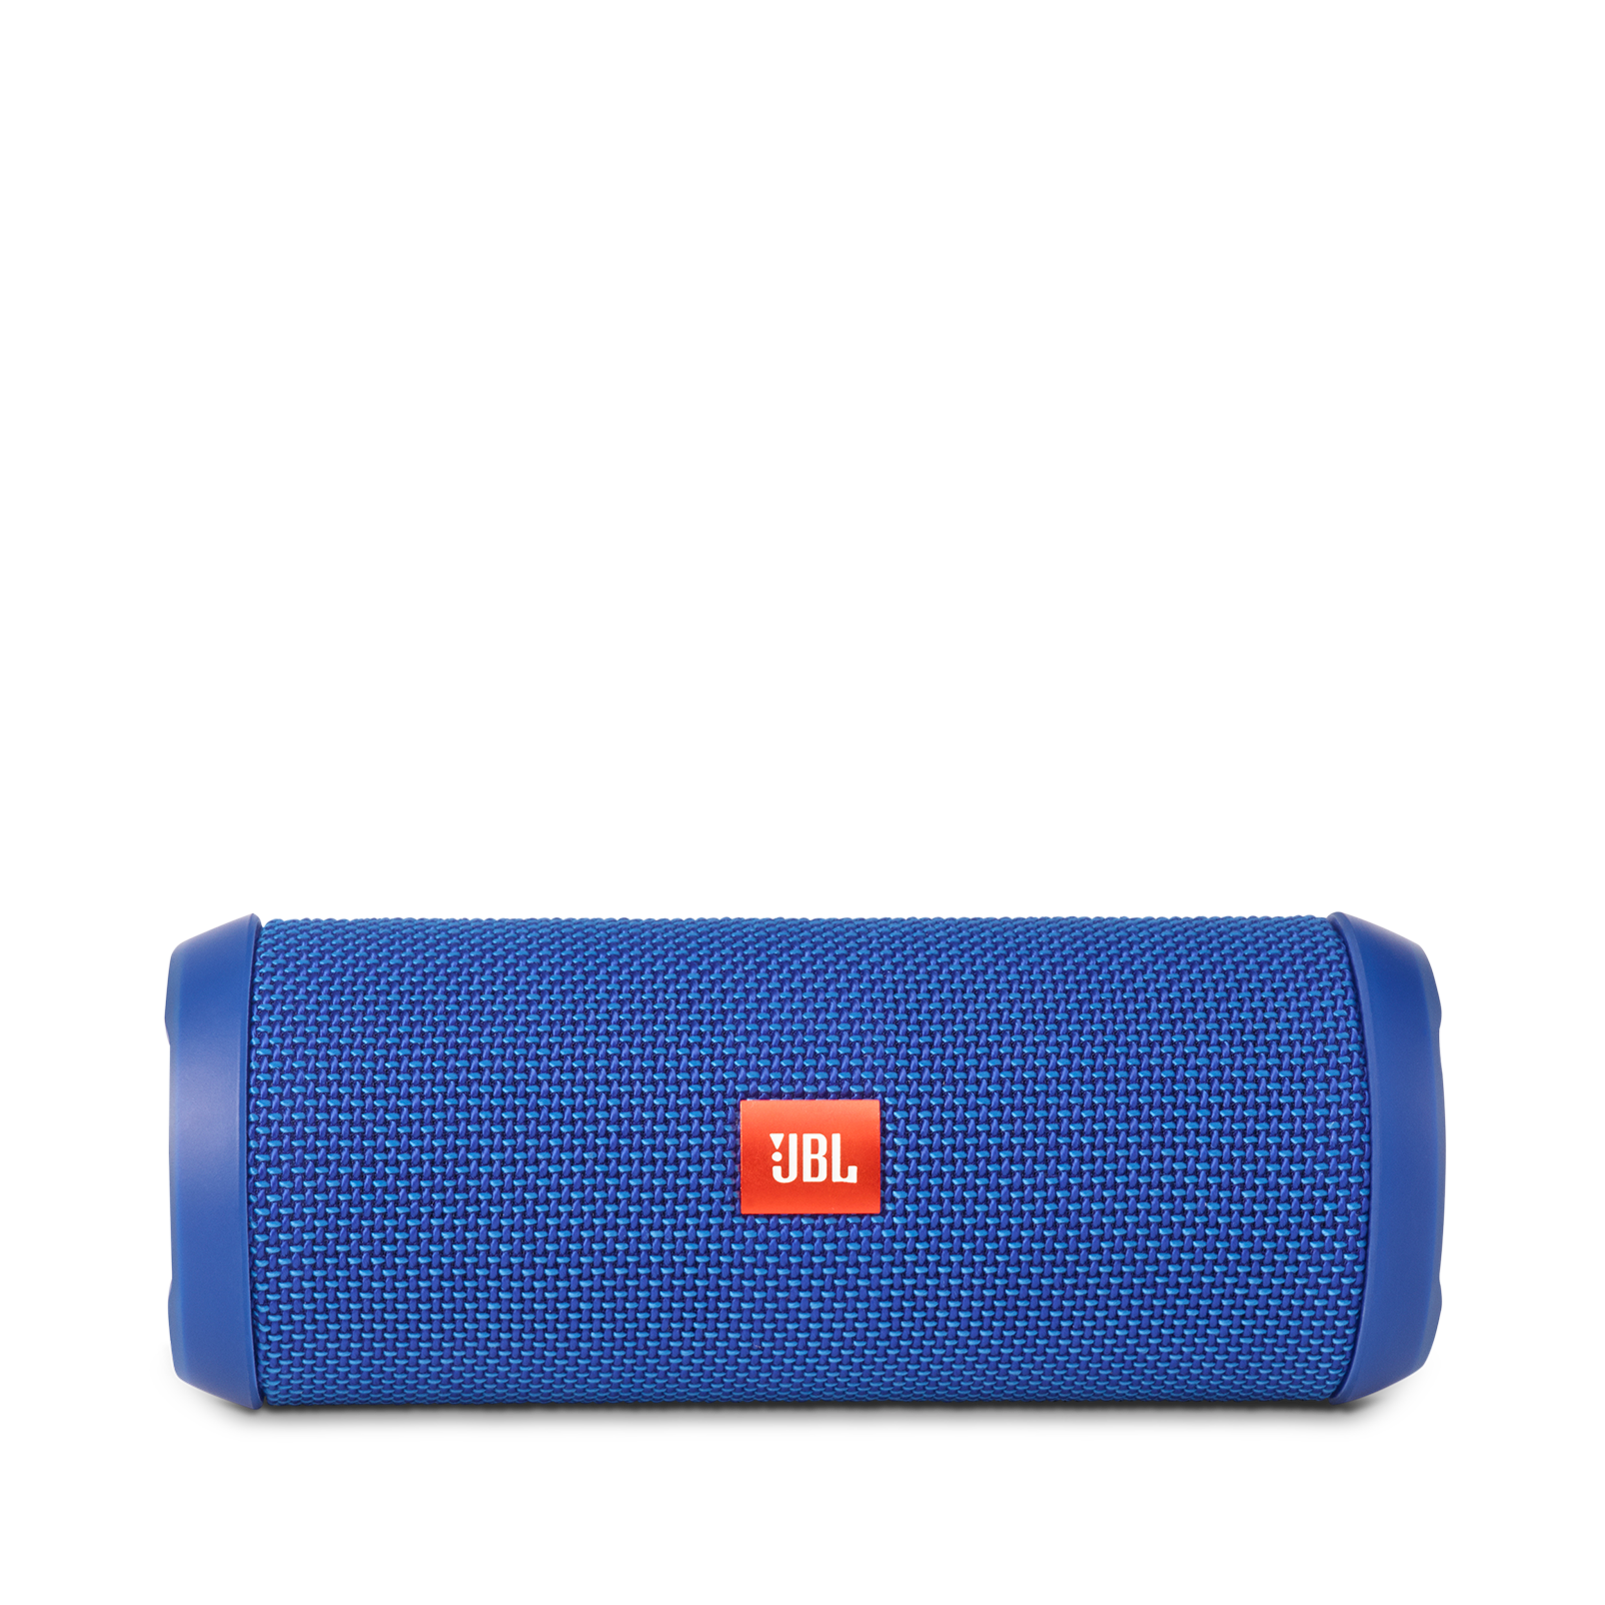 JBL Flip 3 - Blue - Splashproof portable Bluetooth speaker with powerful sound and speakerphone technology - Front